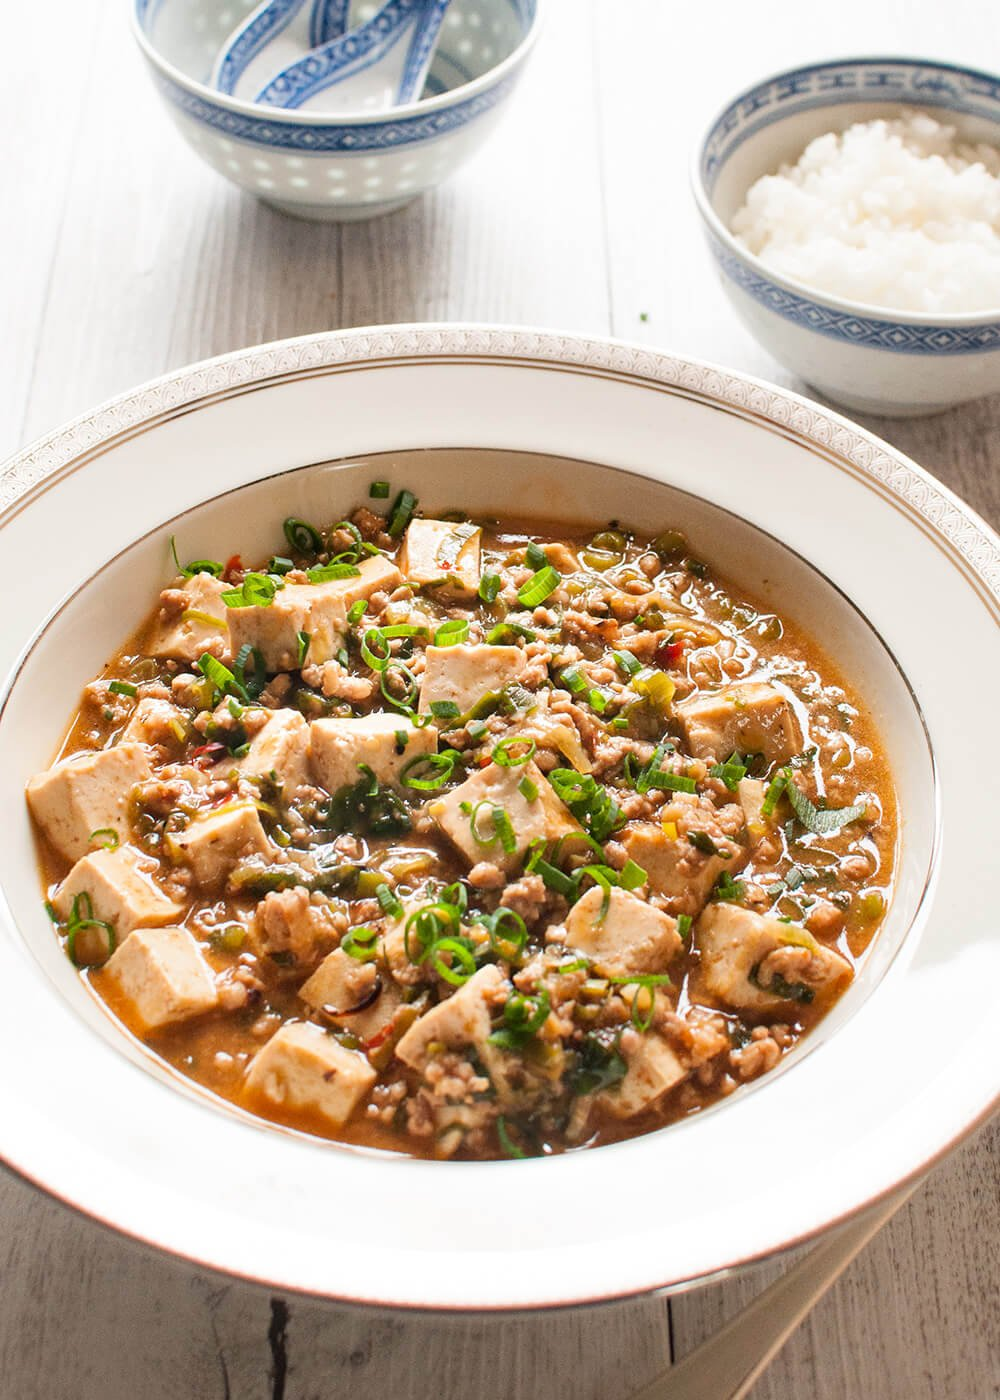 """Mabodofu (麻婆豆腐) is the Japanese name for """"Mapo Tofu"""", which is a Chinese dish from Sichuan province. Tofu and ground meat are stir fried with a flavoursome sauce. But the flavour of mabodofu is yet again modified to suit to the Japanese palette and not as spicy as the Chinese version of mapo tofu."""